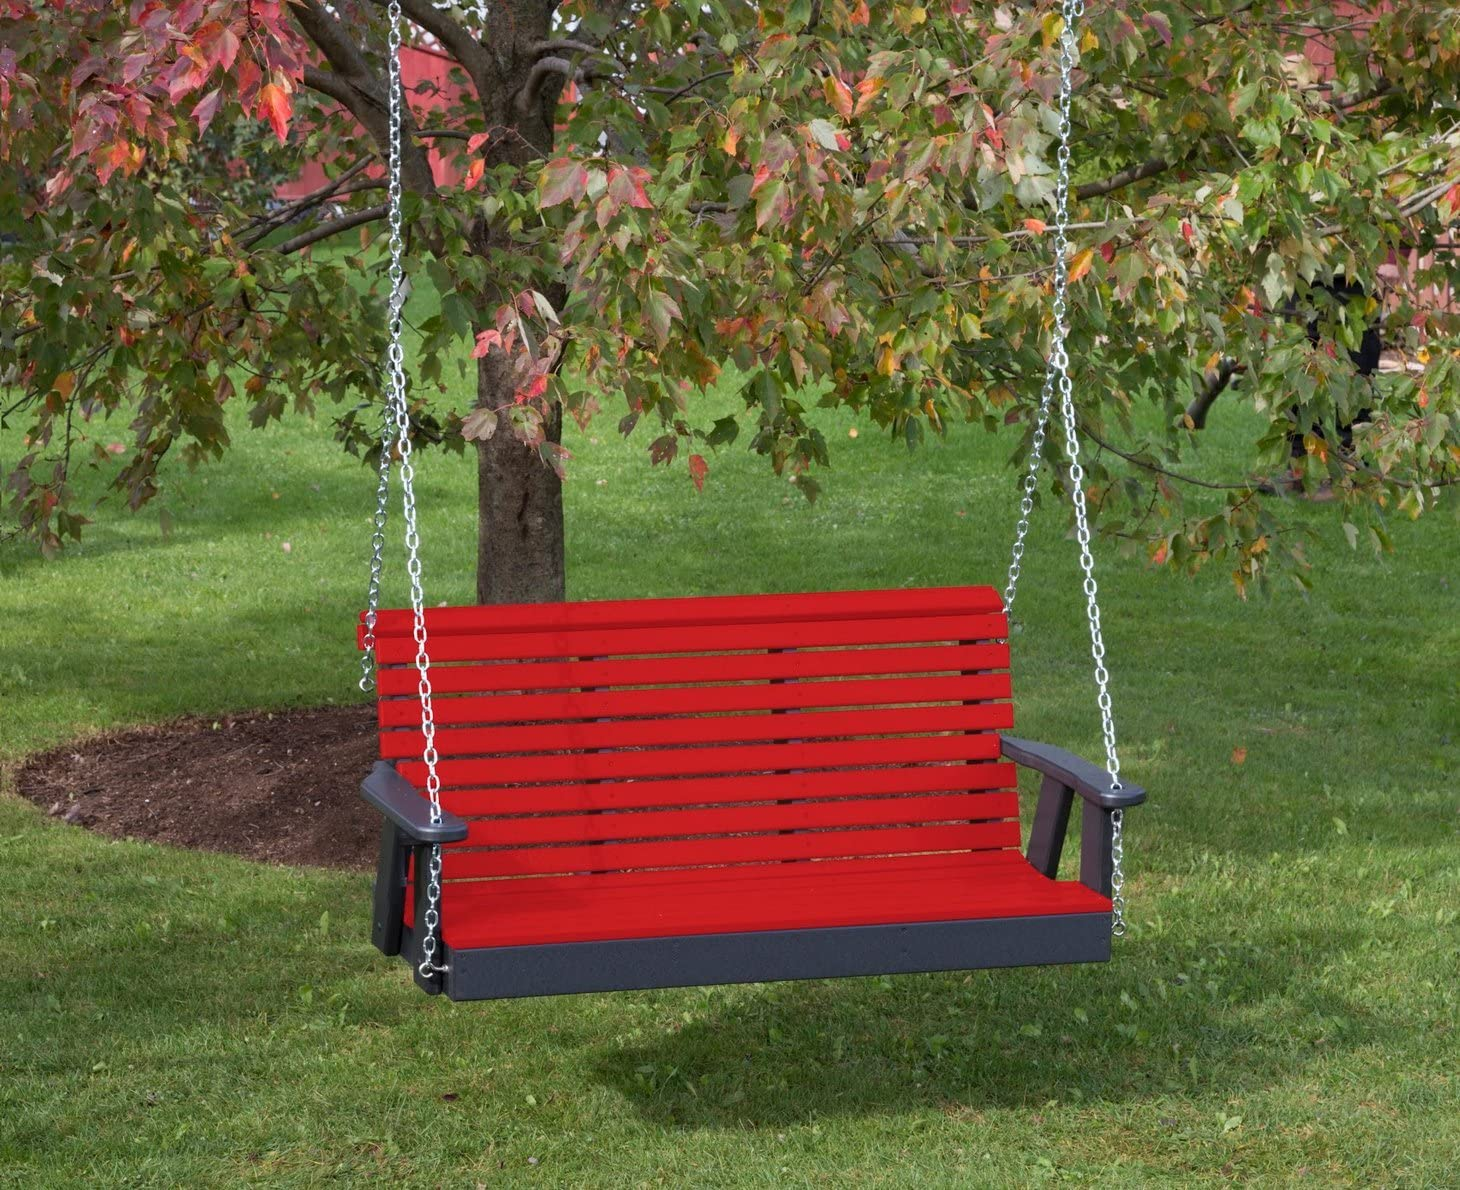 Ecommersify Inc 5FT-Bright RED-Poly Lumber ROLL Back Porch Swing Heavy Duty Everlasting PolyTuf HDPE – Made in USA – Amish Crafted